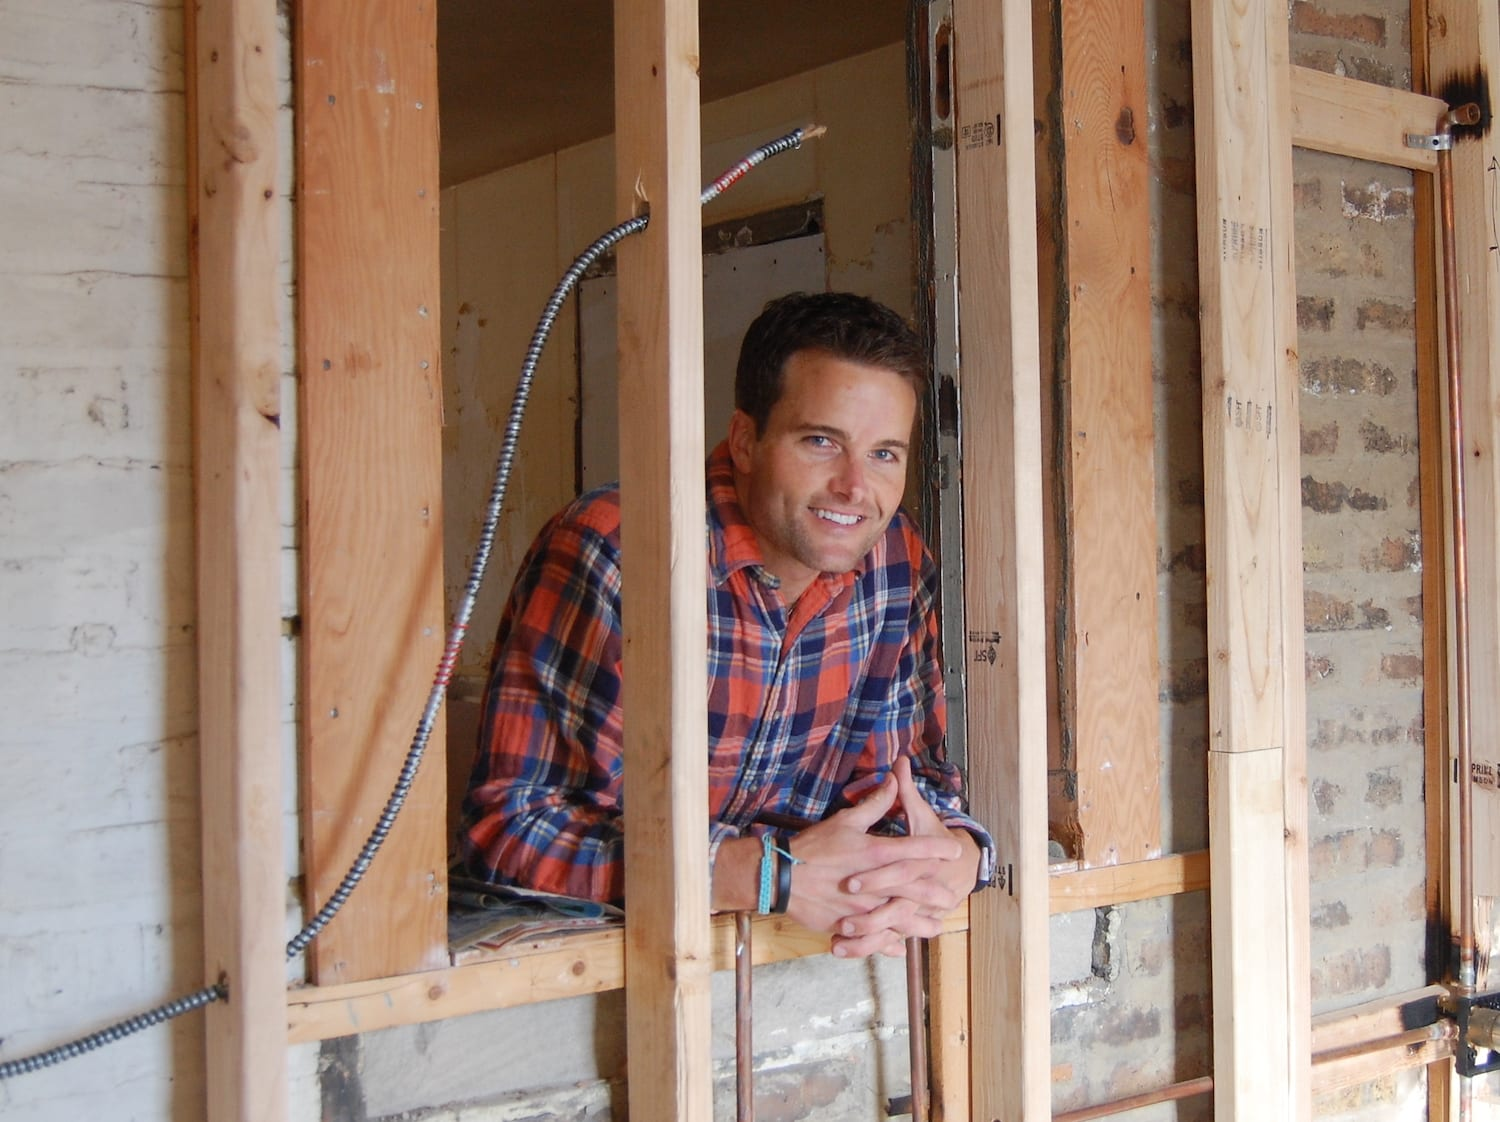 Army veteran Kirby Atwell at a home that he's renovating as a real estate entrepreneur